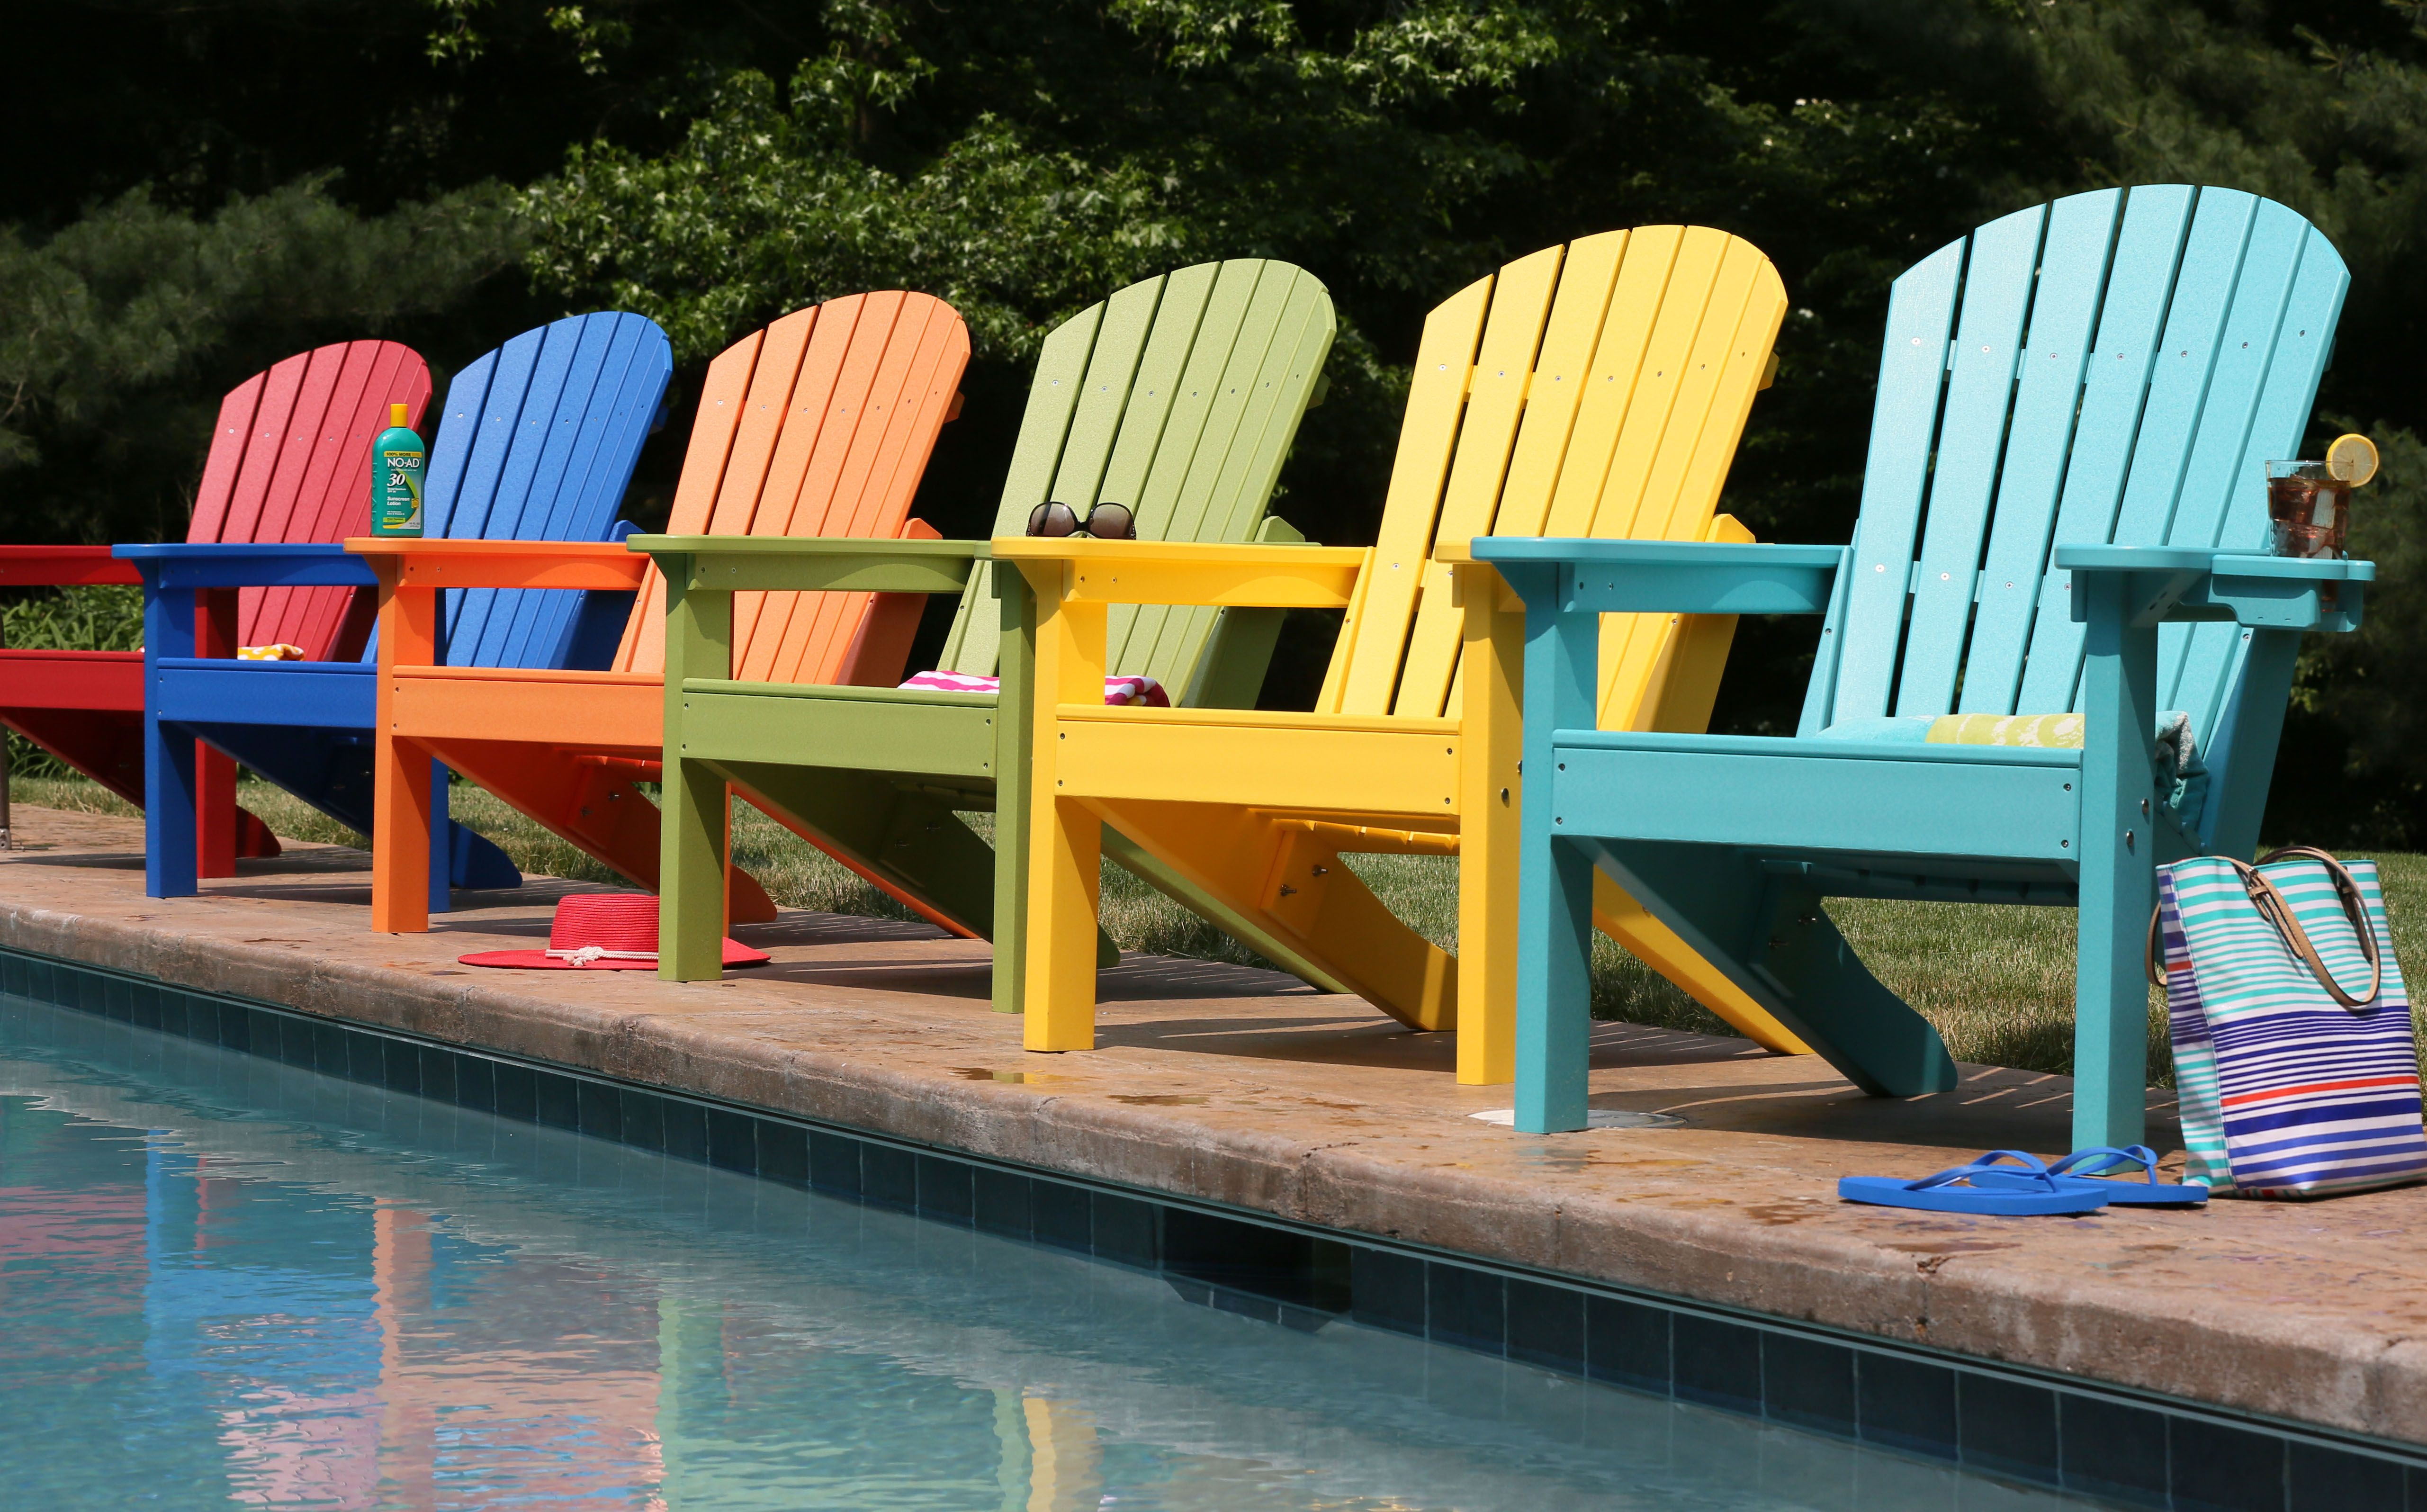 A Poolside Is Turned Into A Relaxation Spot With Bright Colored Adirondack  Chairs. These Poly Lumber Chairs Are Unaffected By Normal Or Saltwater  Pools.